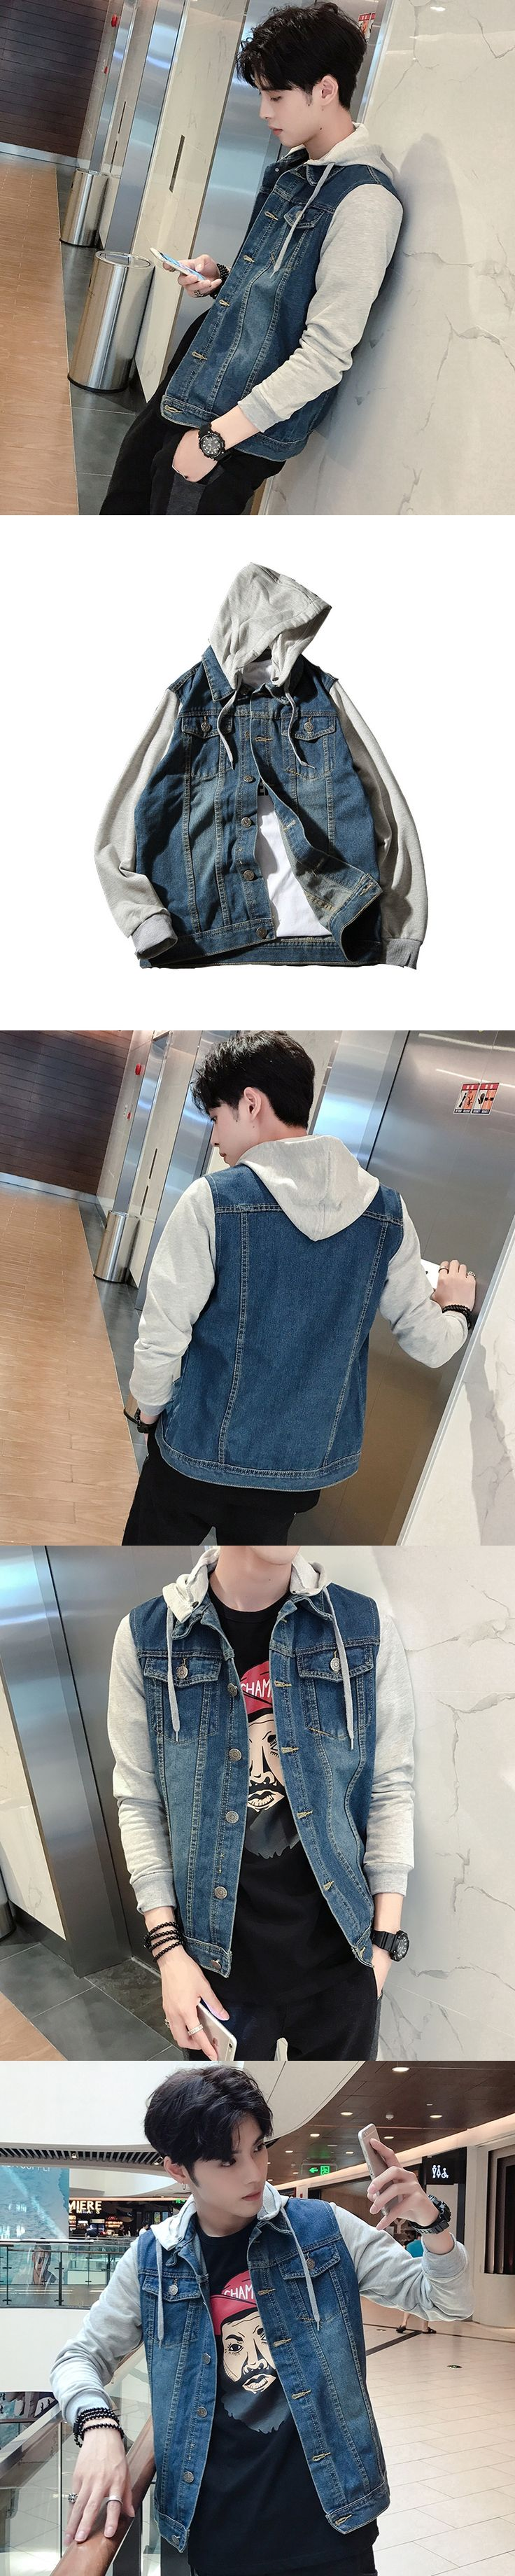 2017 Jeans Patchwork Long Knitting Sweater Jacket Loose Coat With Hat Knit Elastic Slim Casual Brand Designers Male Cardigan